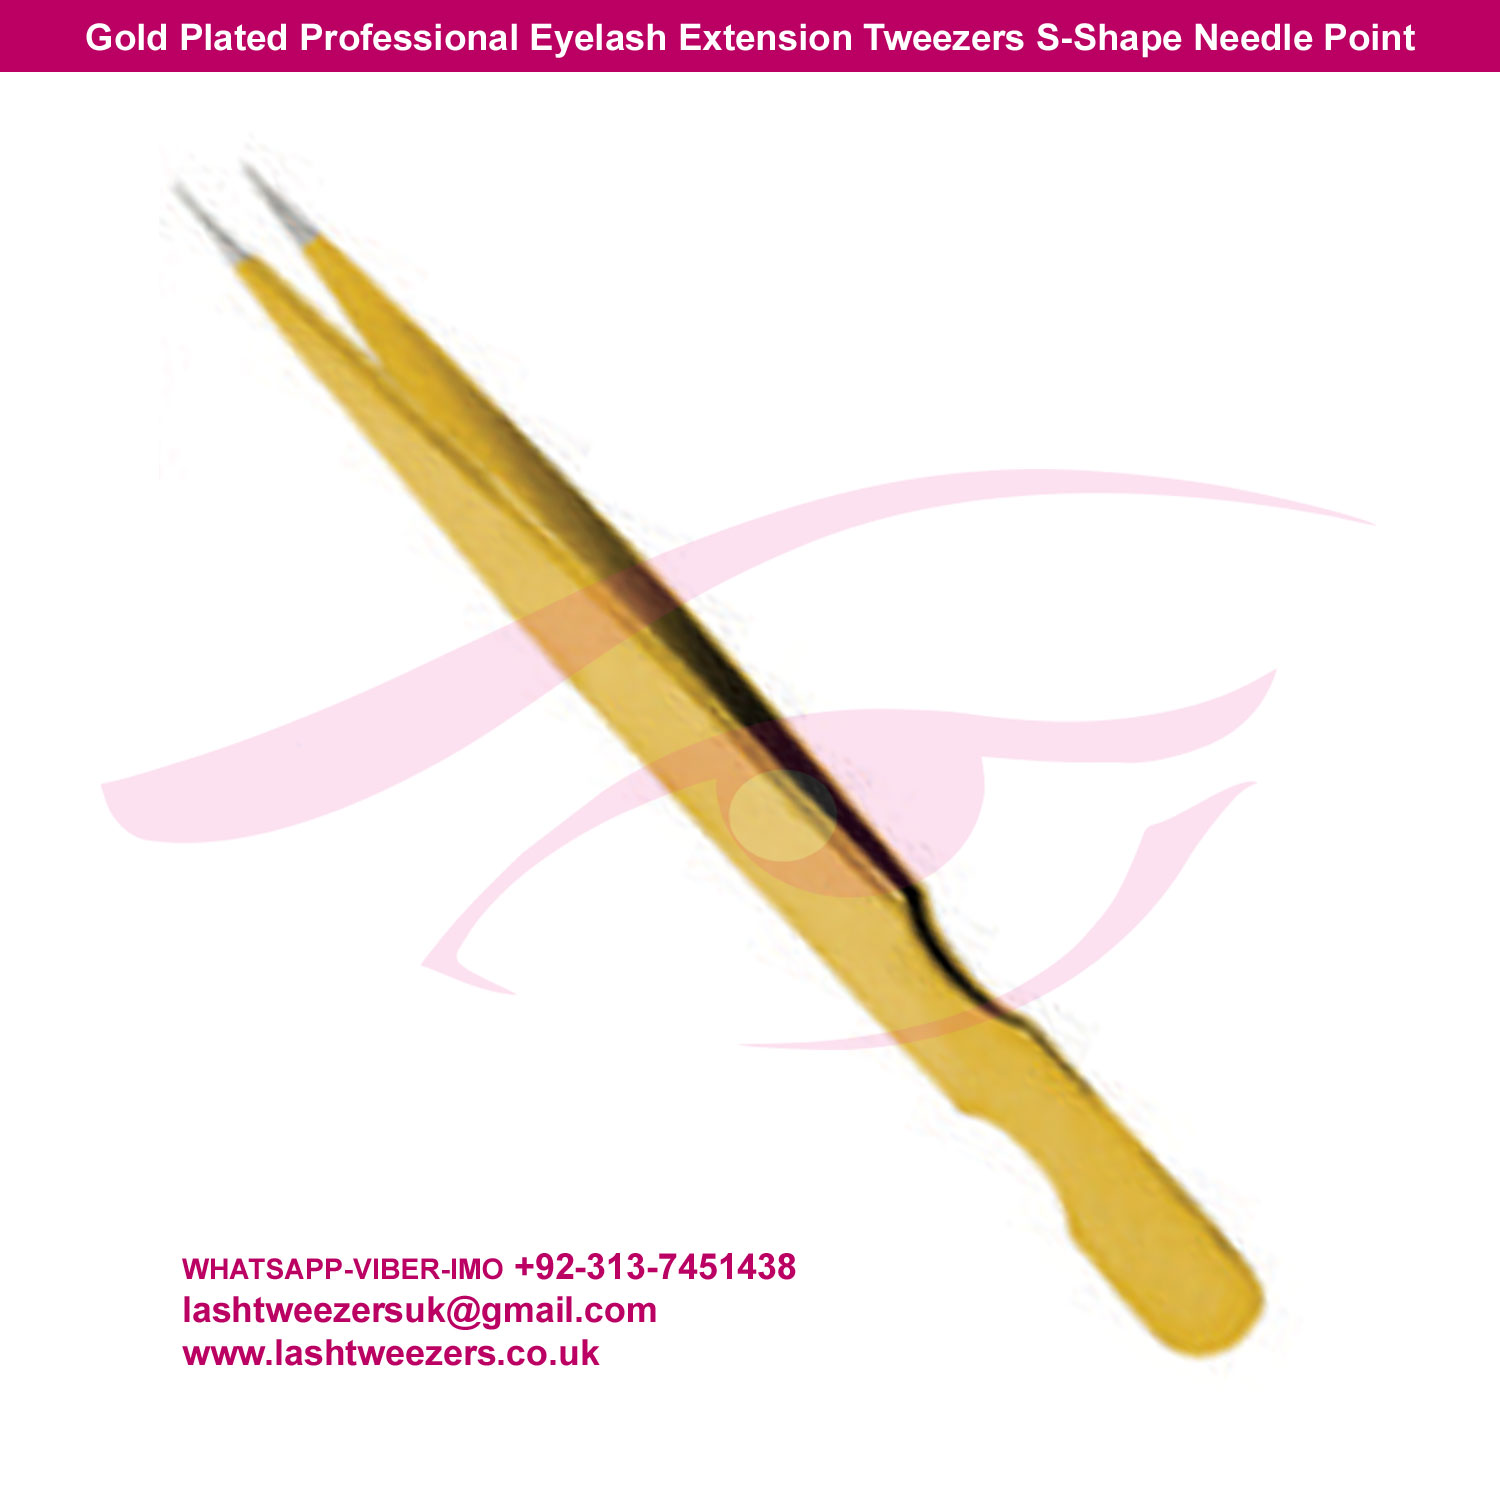 Gold Plated Professional Eyelash Extension Tweezers S-Shape Needle Point